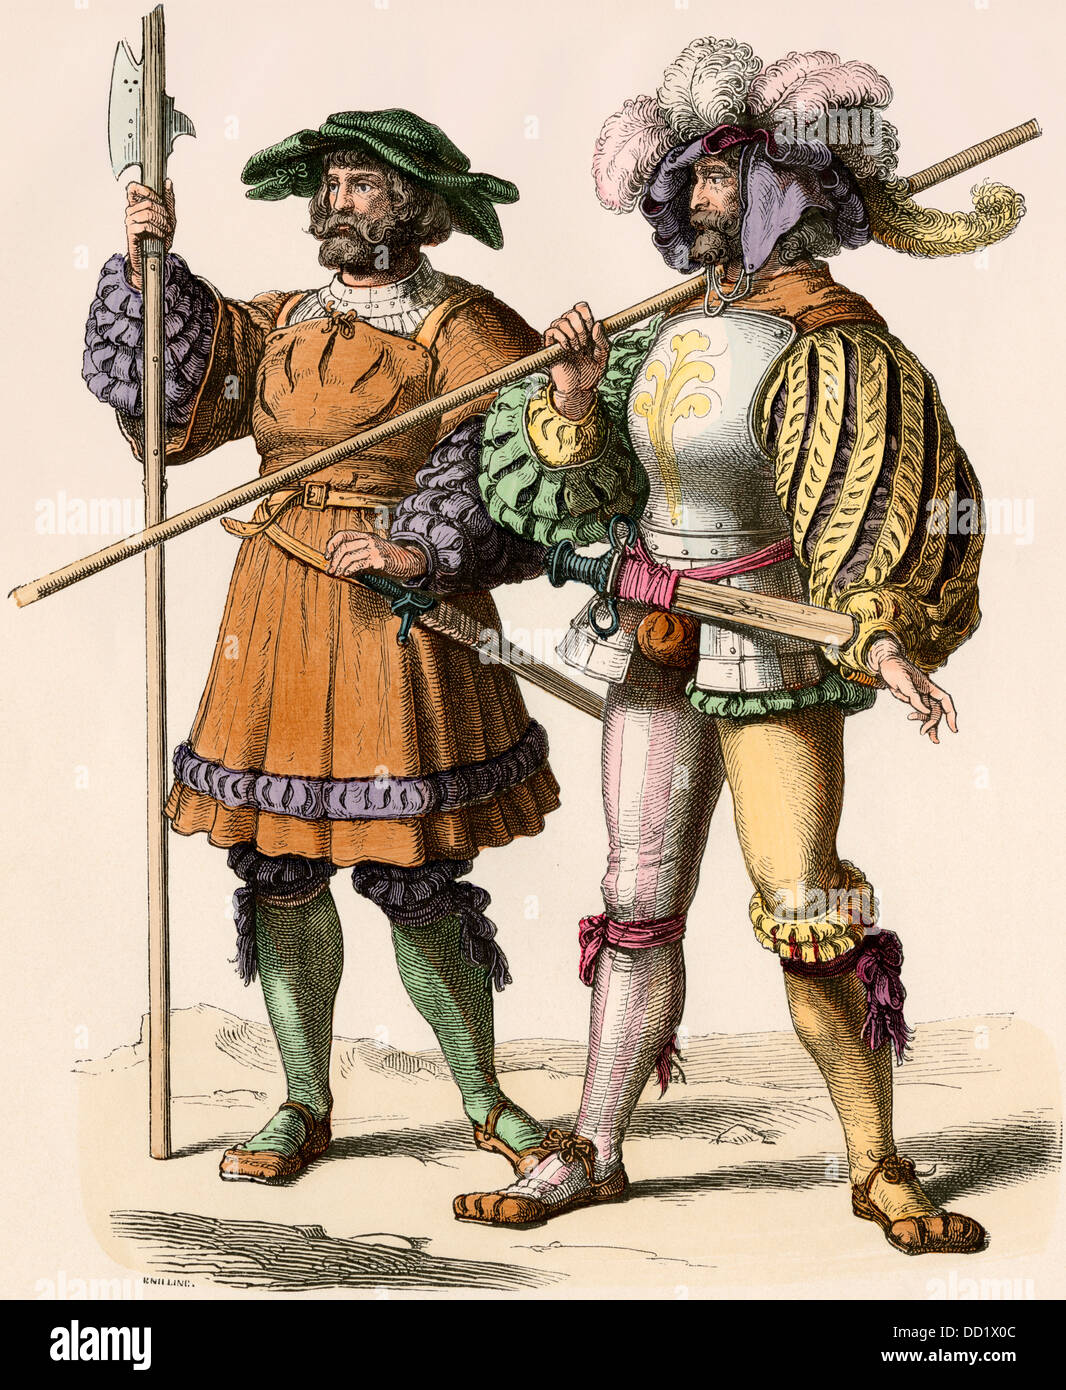 Servants or guards of a German country estate, 1500s. Hand-colored print - Stock Image